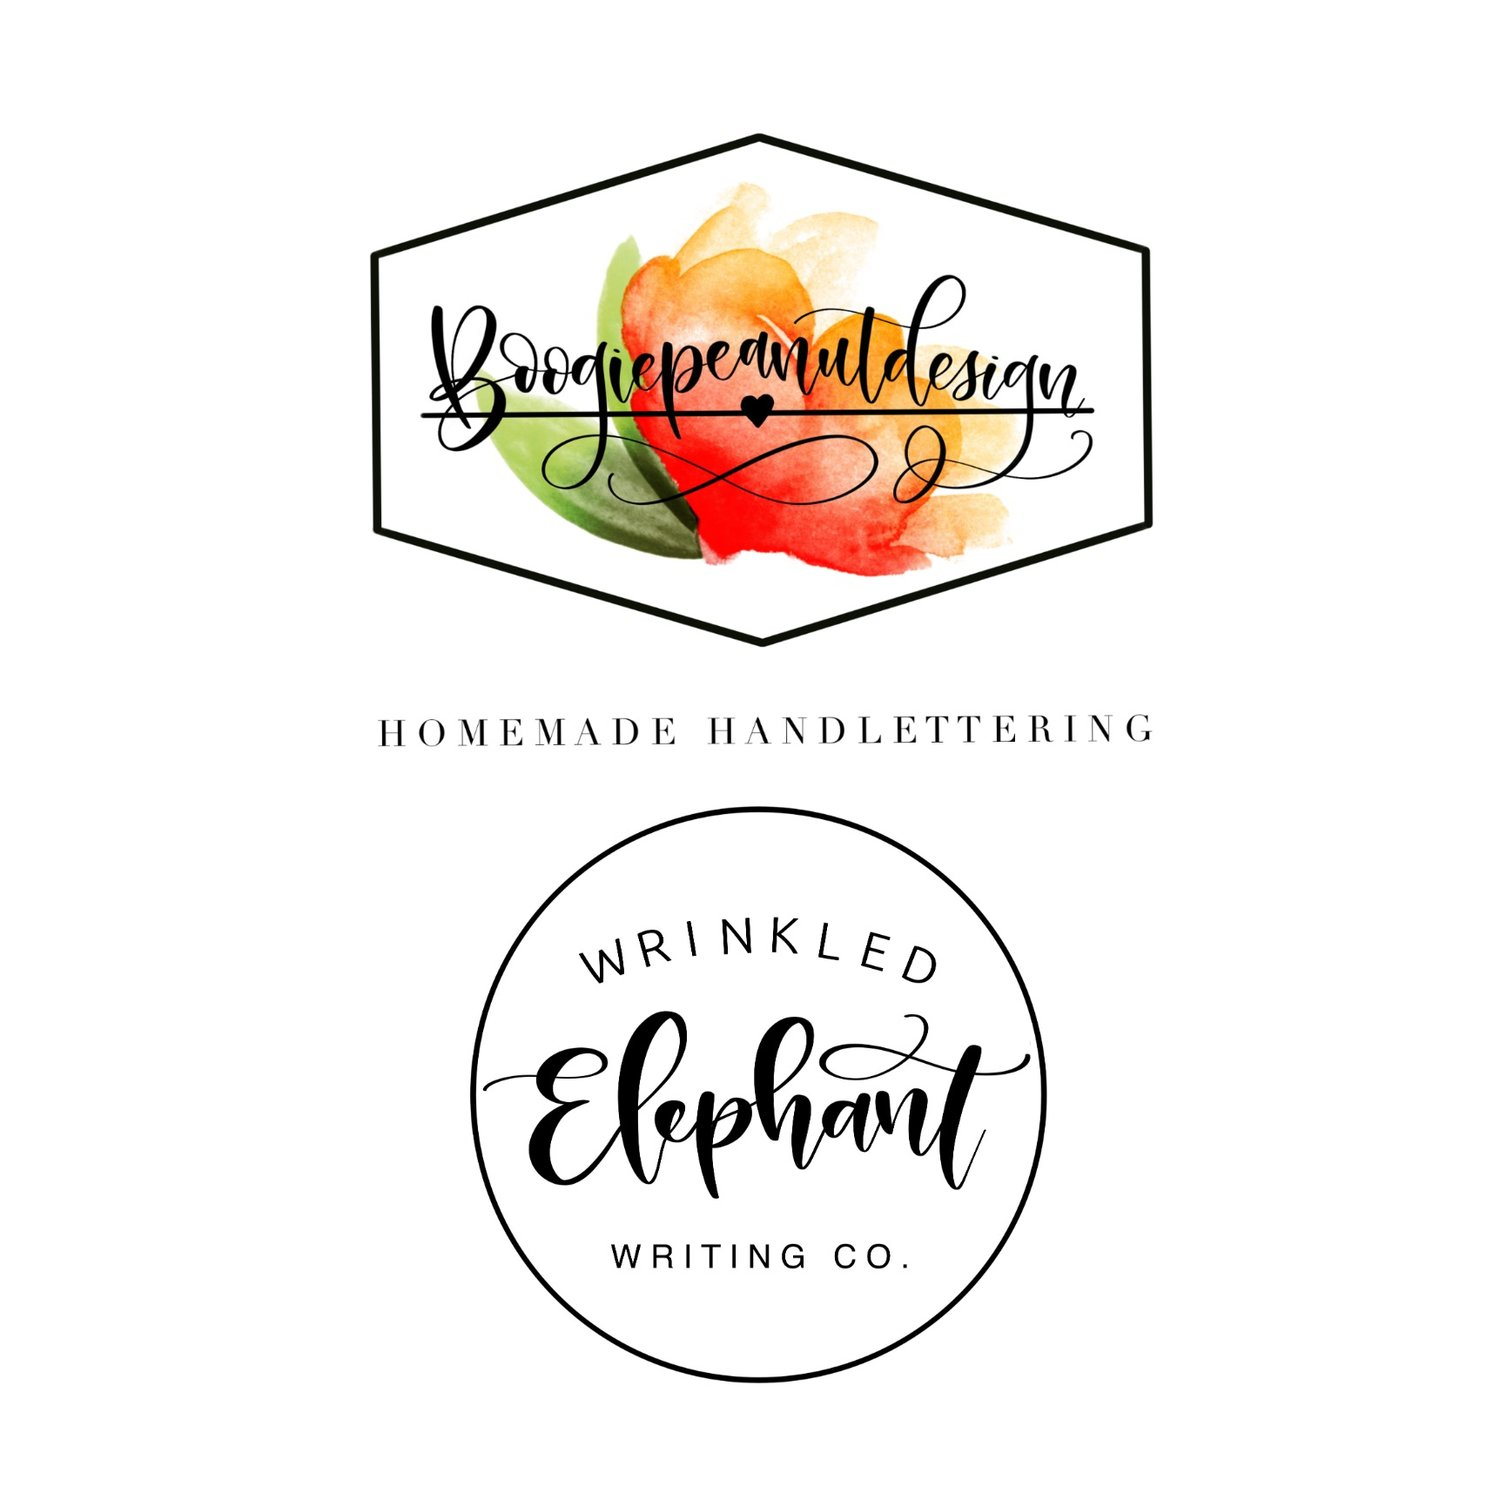 Wrinkled Elephant Writing Co.